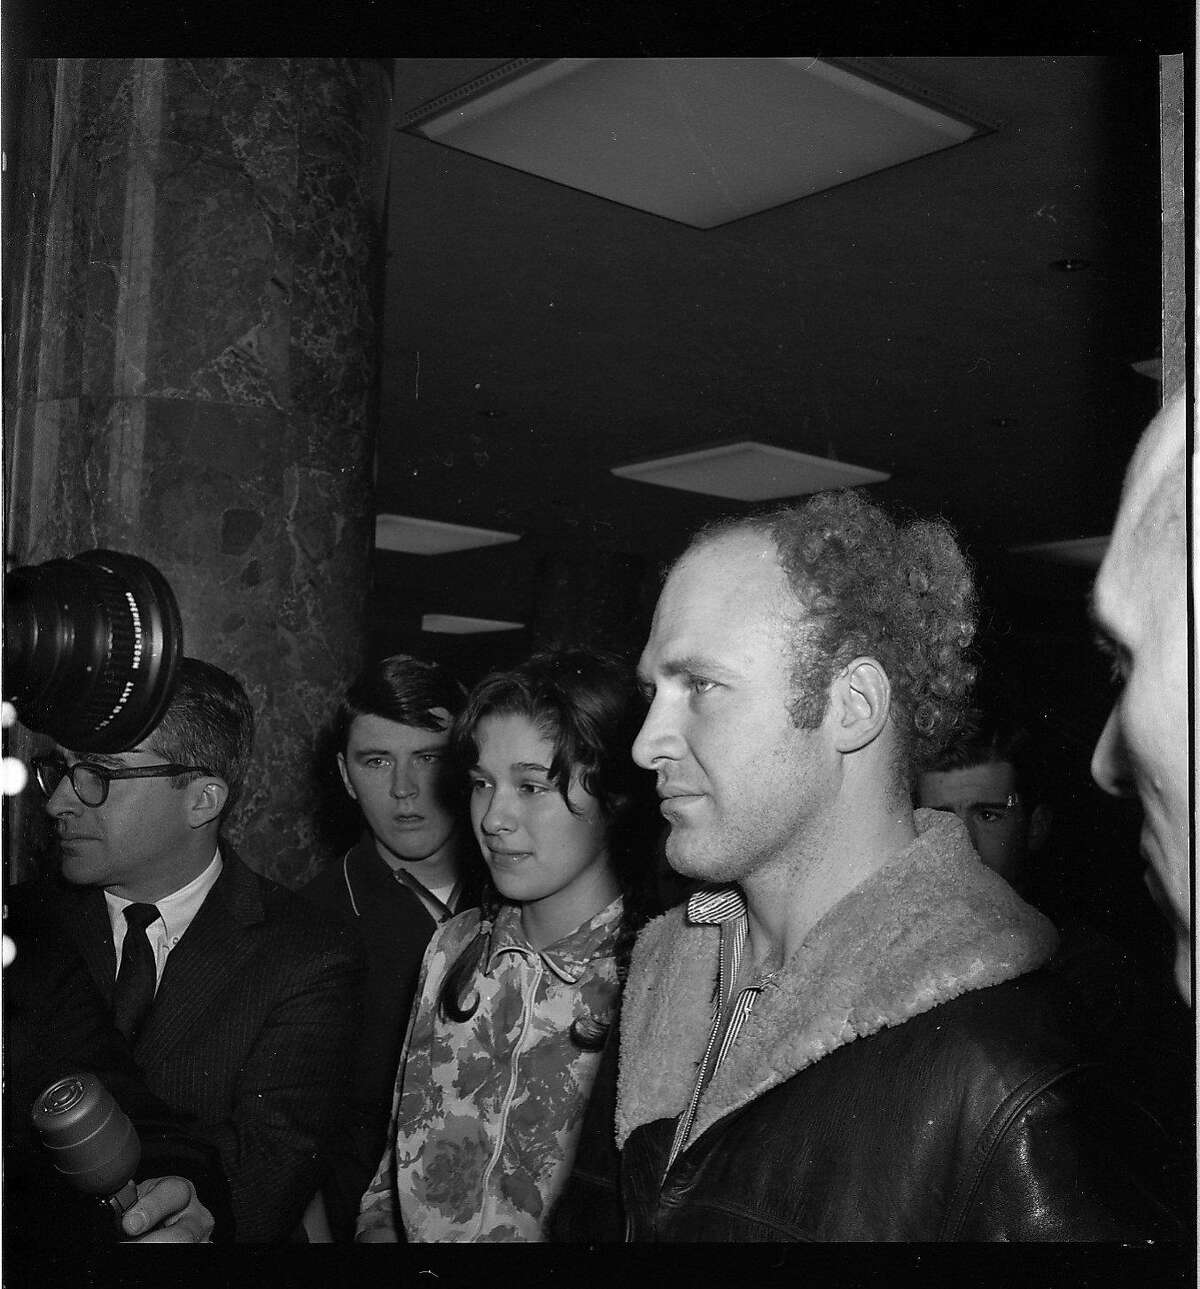 FILE-- Ken Kesey and Carolyn Adams found on a roof top with marijuana, on Jan. 19, 1966.